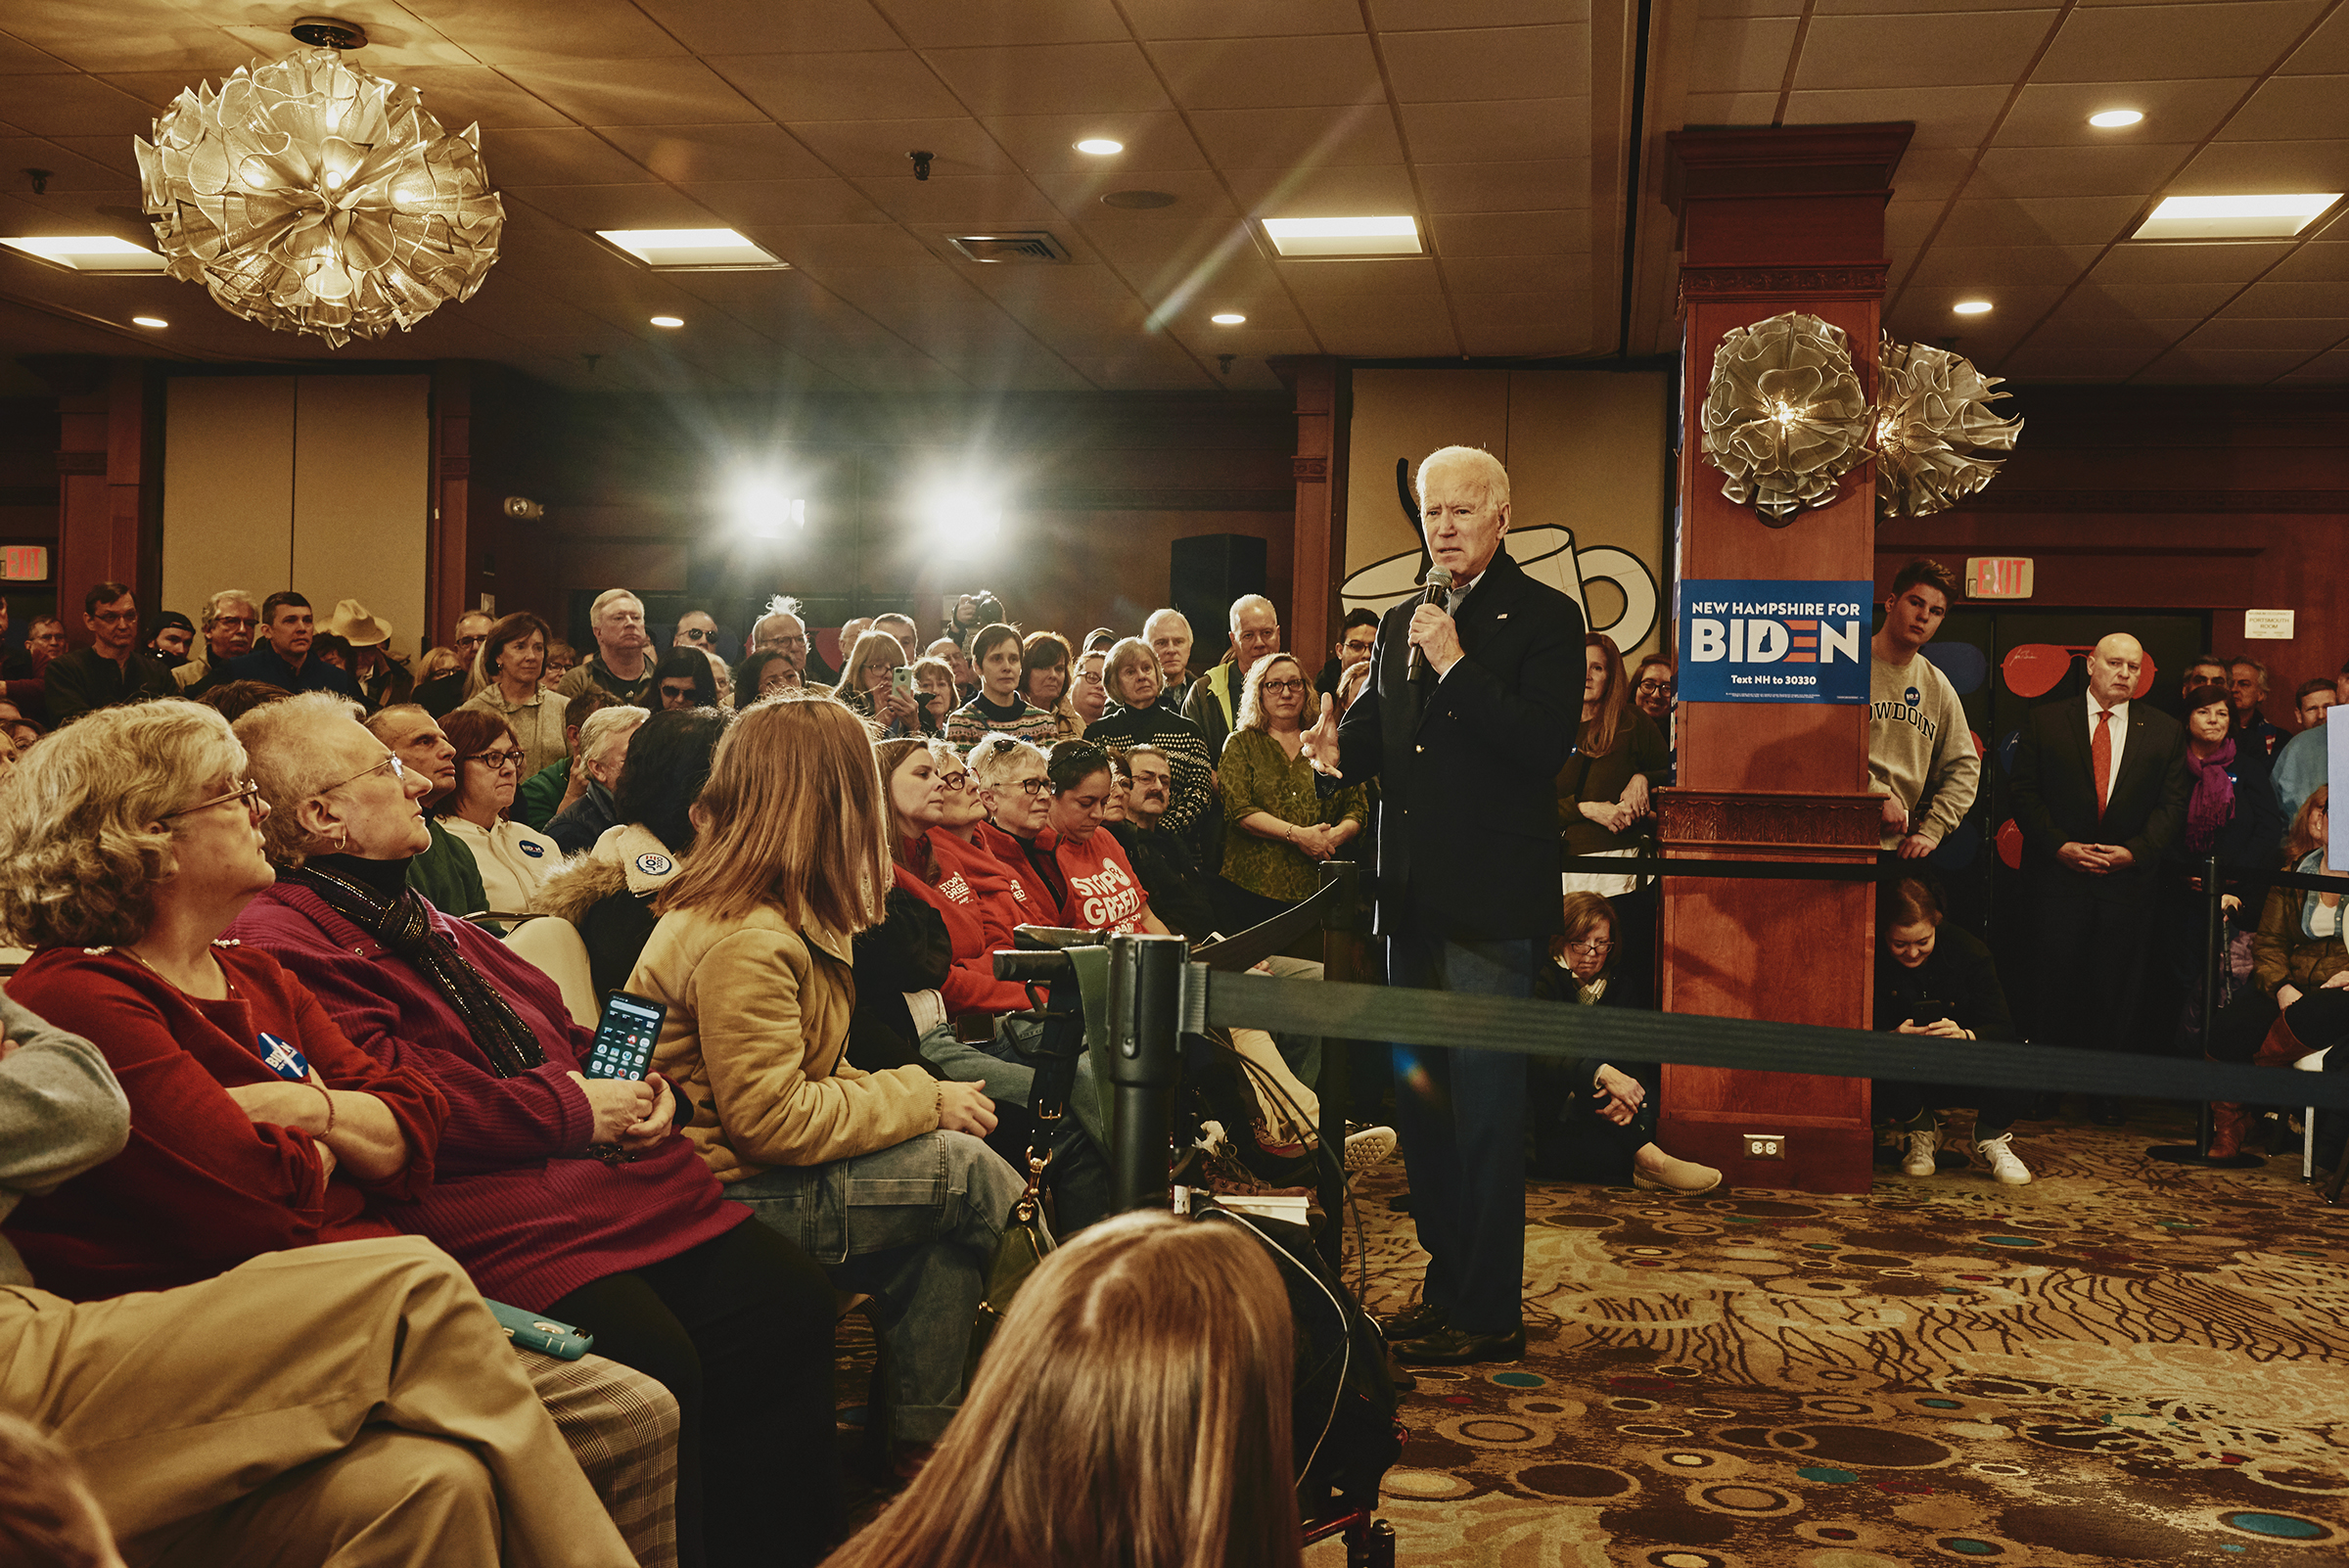 Former Vice President Joe Biden speaks at his GOTV Event at Ashworth by the Sea in Hampton, N.H. on Feb. 9, 2020.